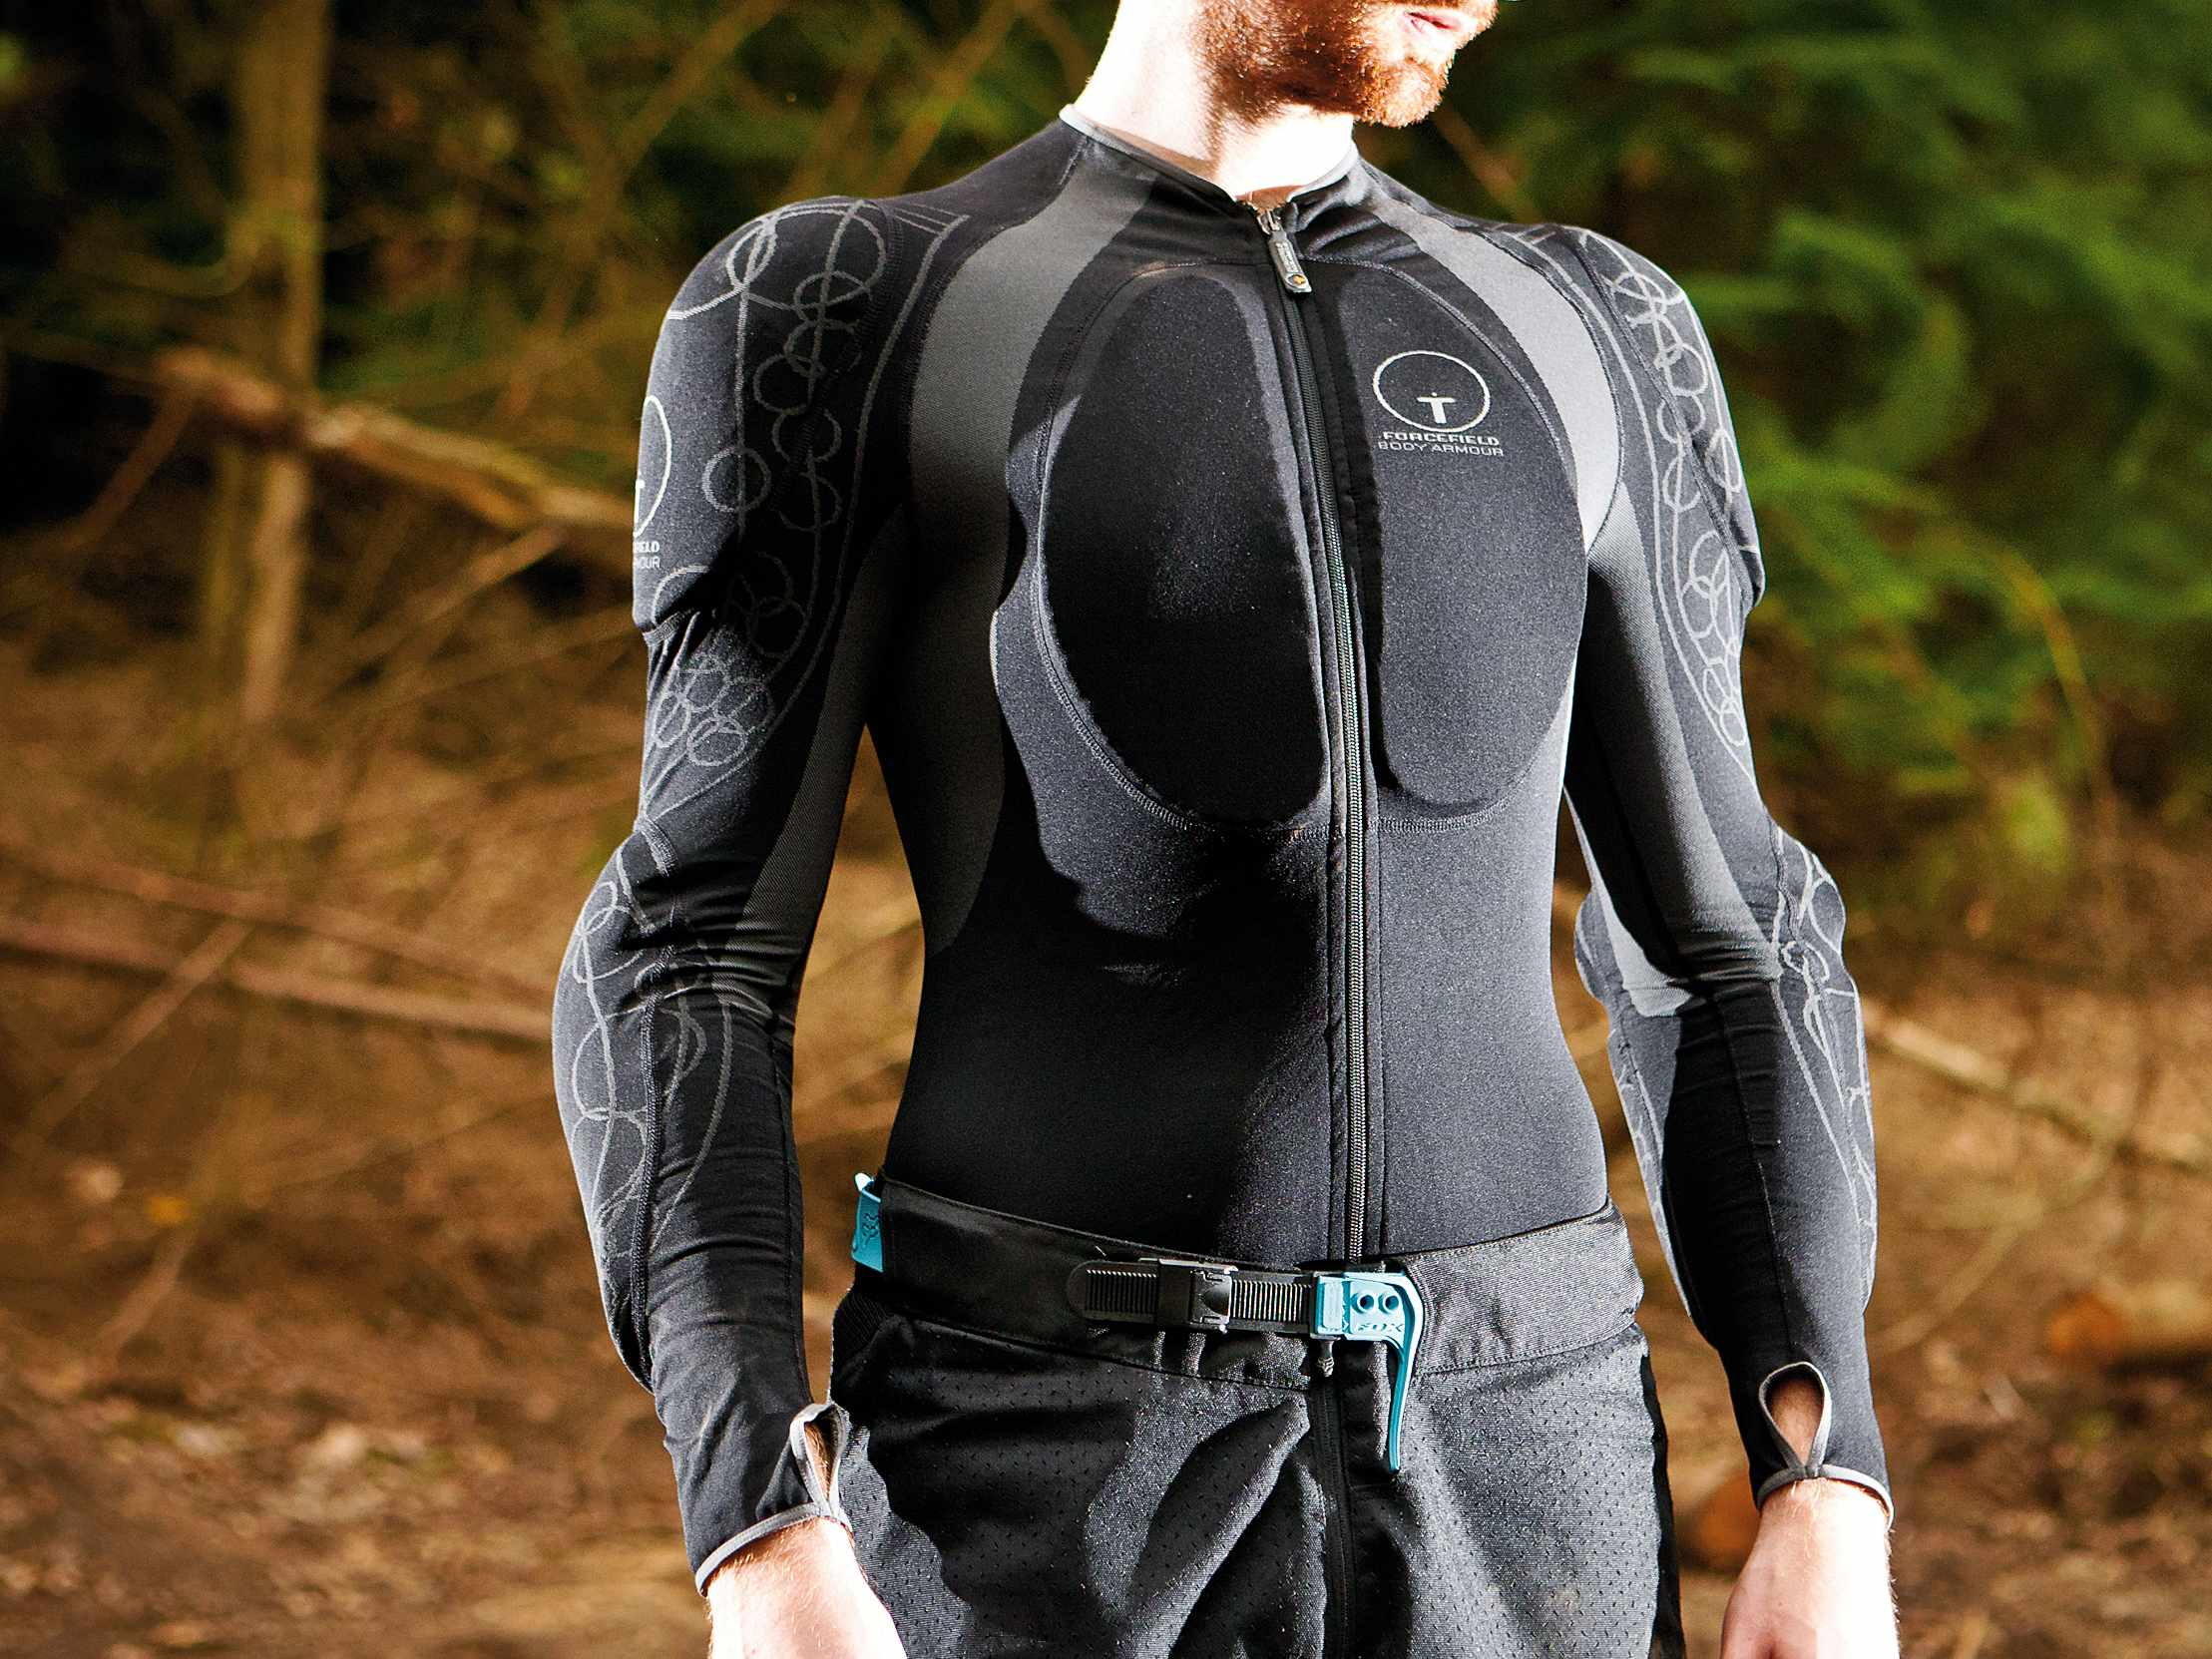 Forcefield Action Shirt body armour